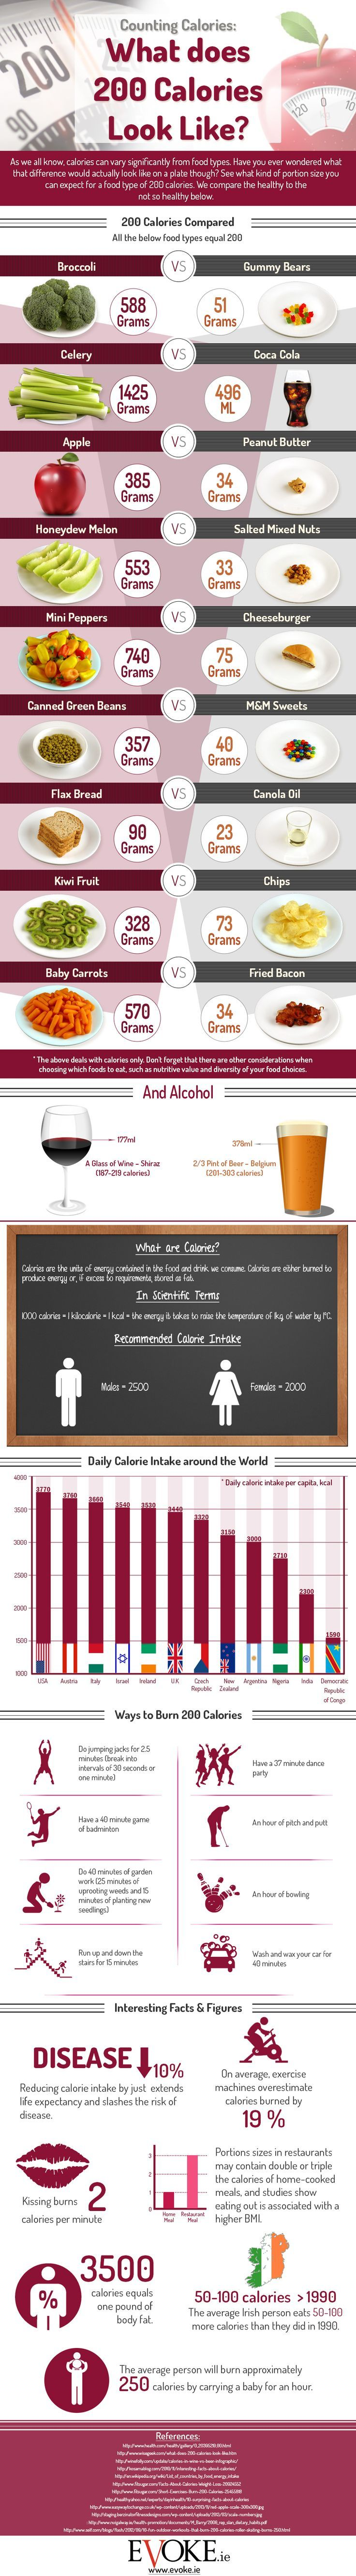 What does 200 Calories Look Like? (Infographic) - Life is all about choices. It helps if you know just what it is you're choosing between.